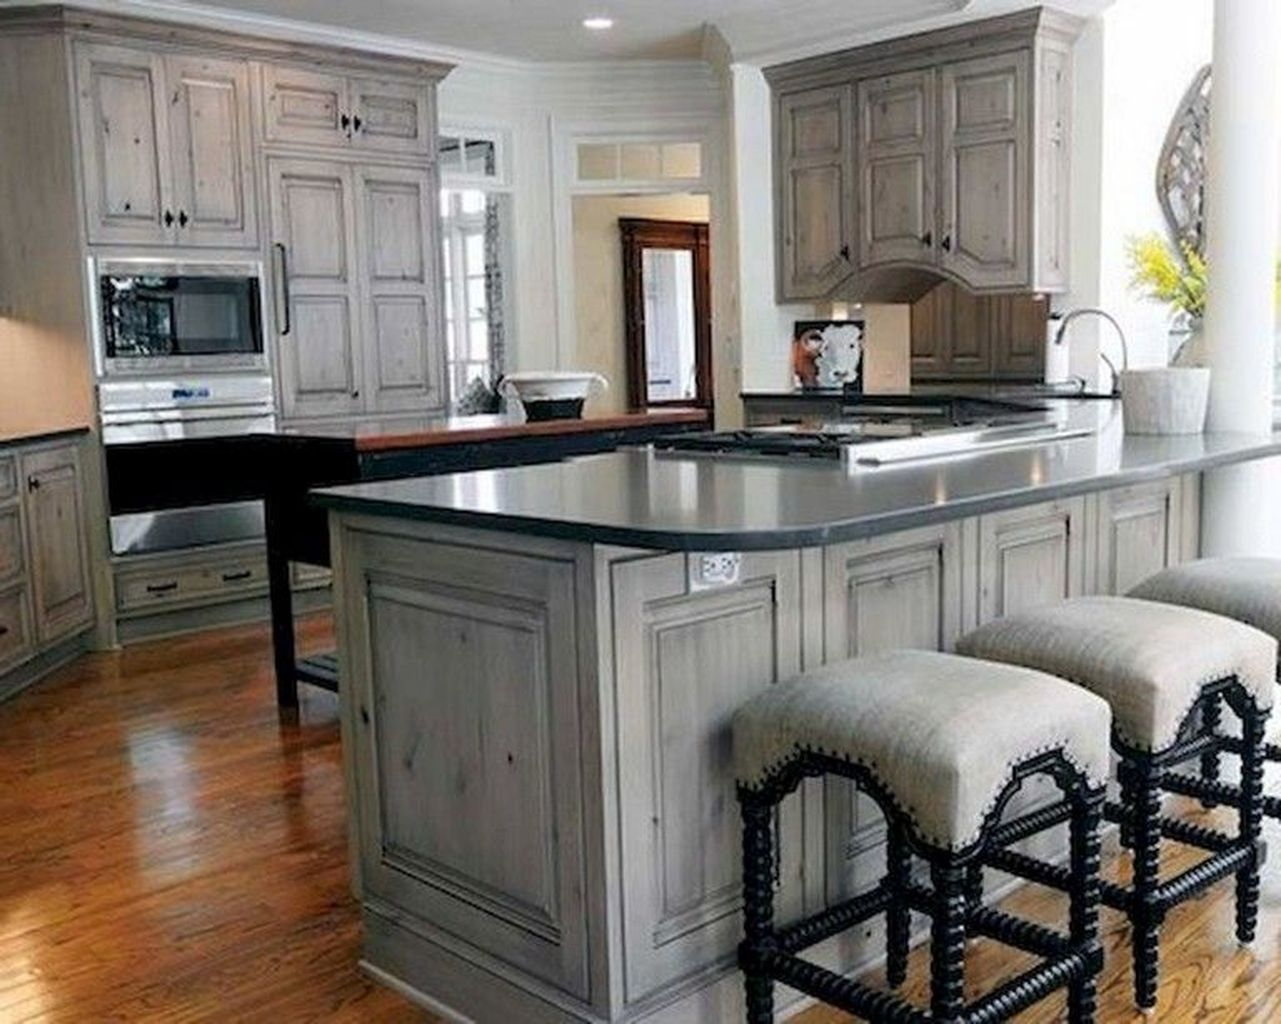 awesome 89 diy farmhouse kitchen cabinets makeover ideas source link https decortutor co on farmhouse kitchen maple cabinets id=56648